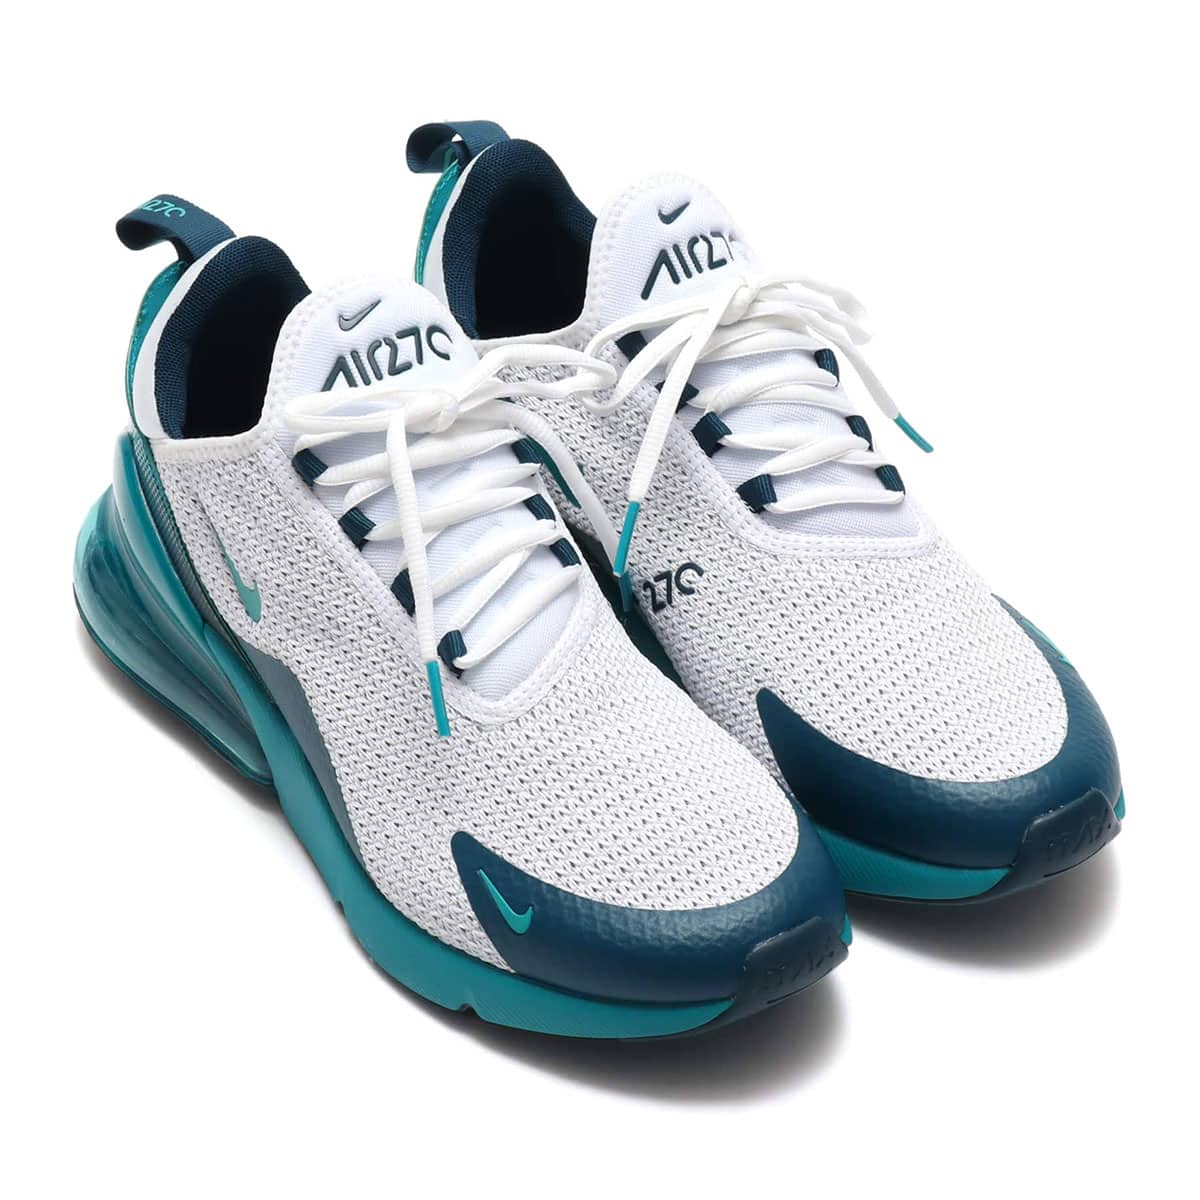 NIKE AIR MAX 270 SE WHITE/SPIRIT TEAL-NIGHTSHADE 19SU-S_photo_large